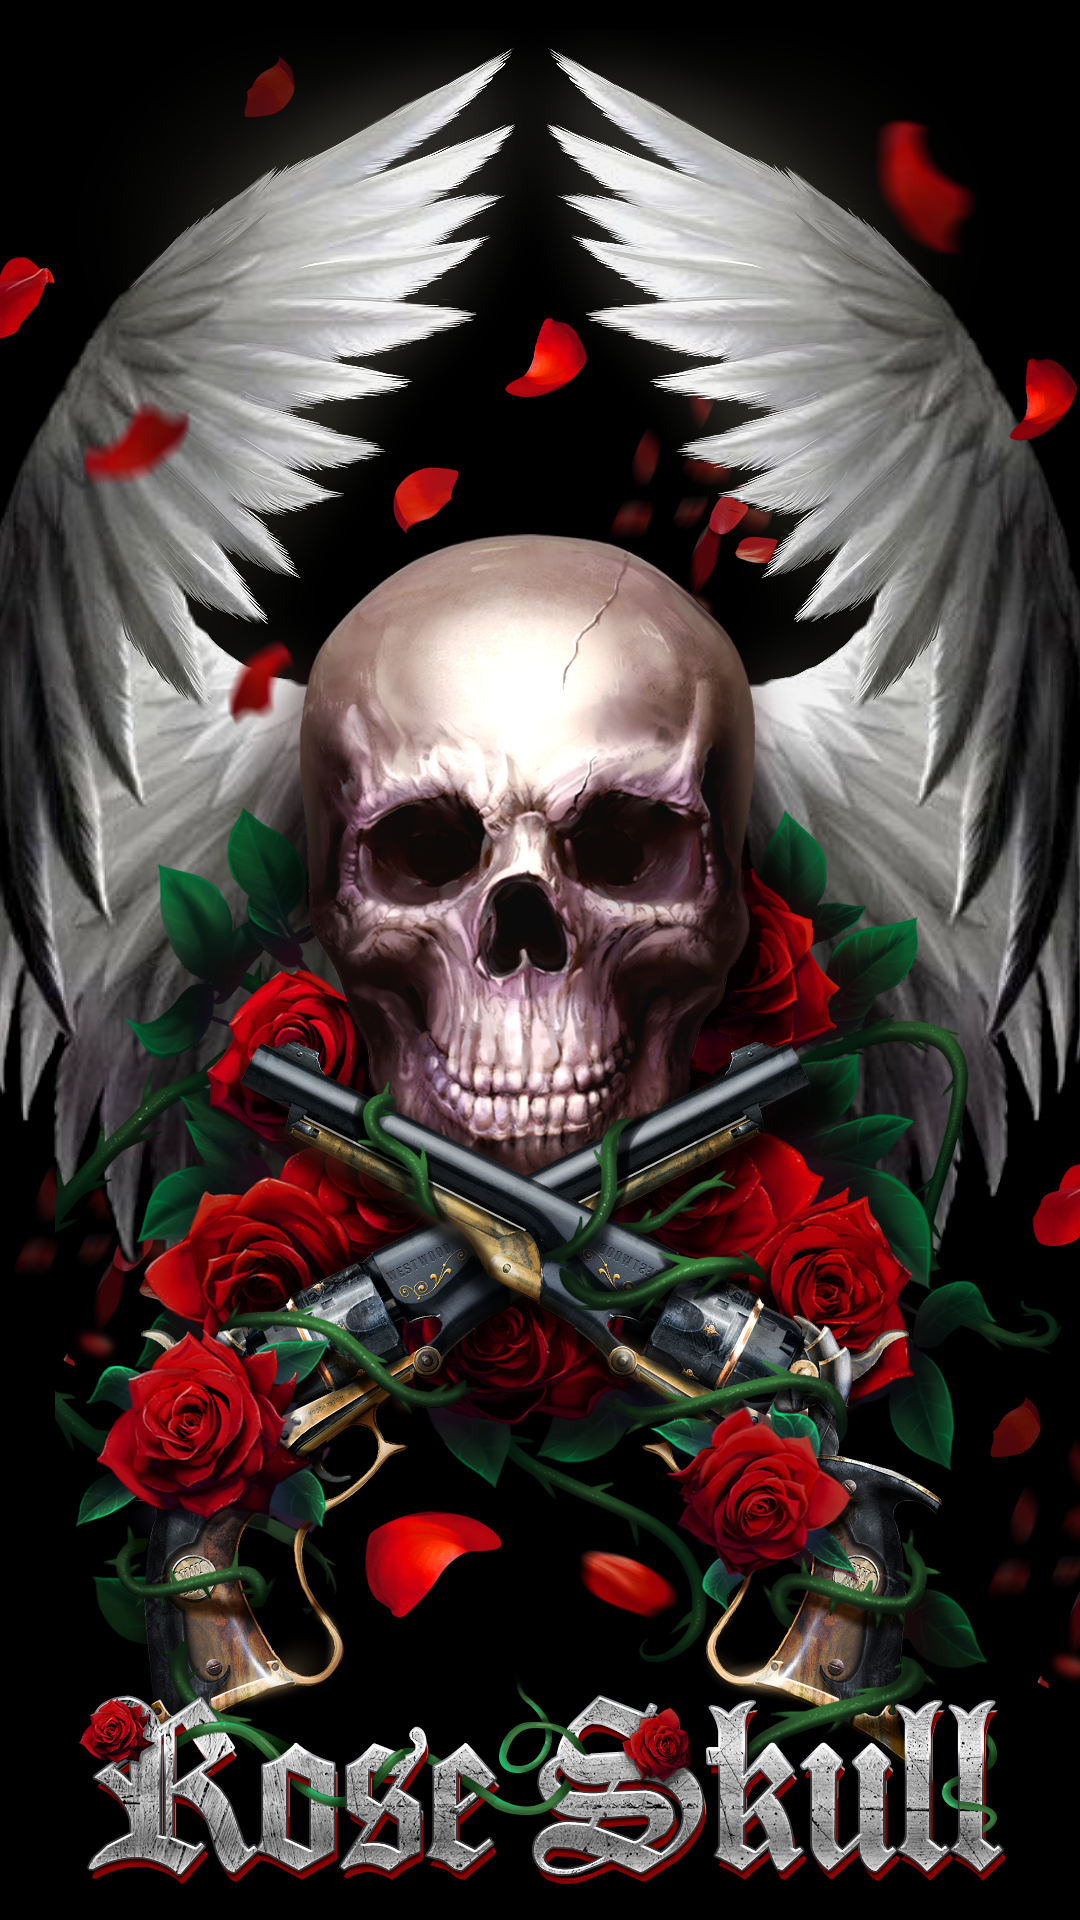 Beautiful rose skull live wallpaper! | Android live wallpapers from Ahatheme in 2019 | Skull art ...